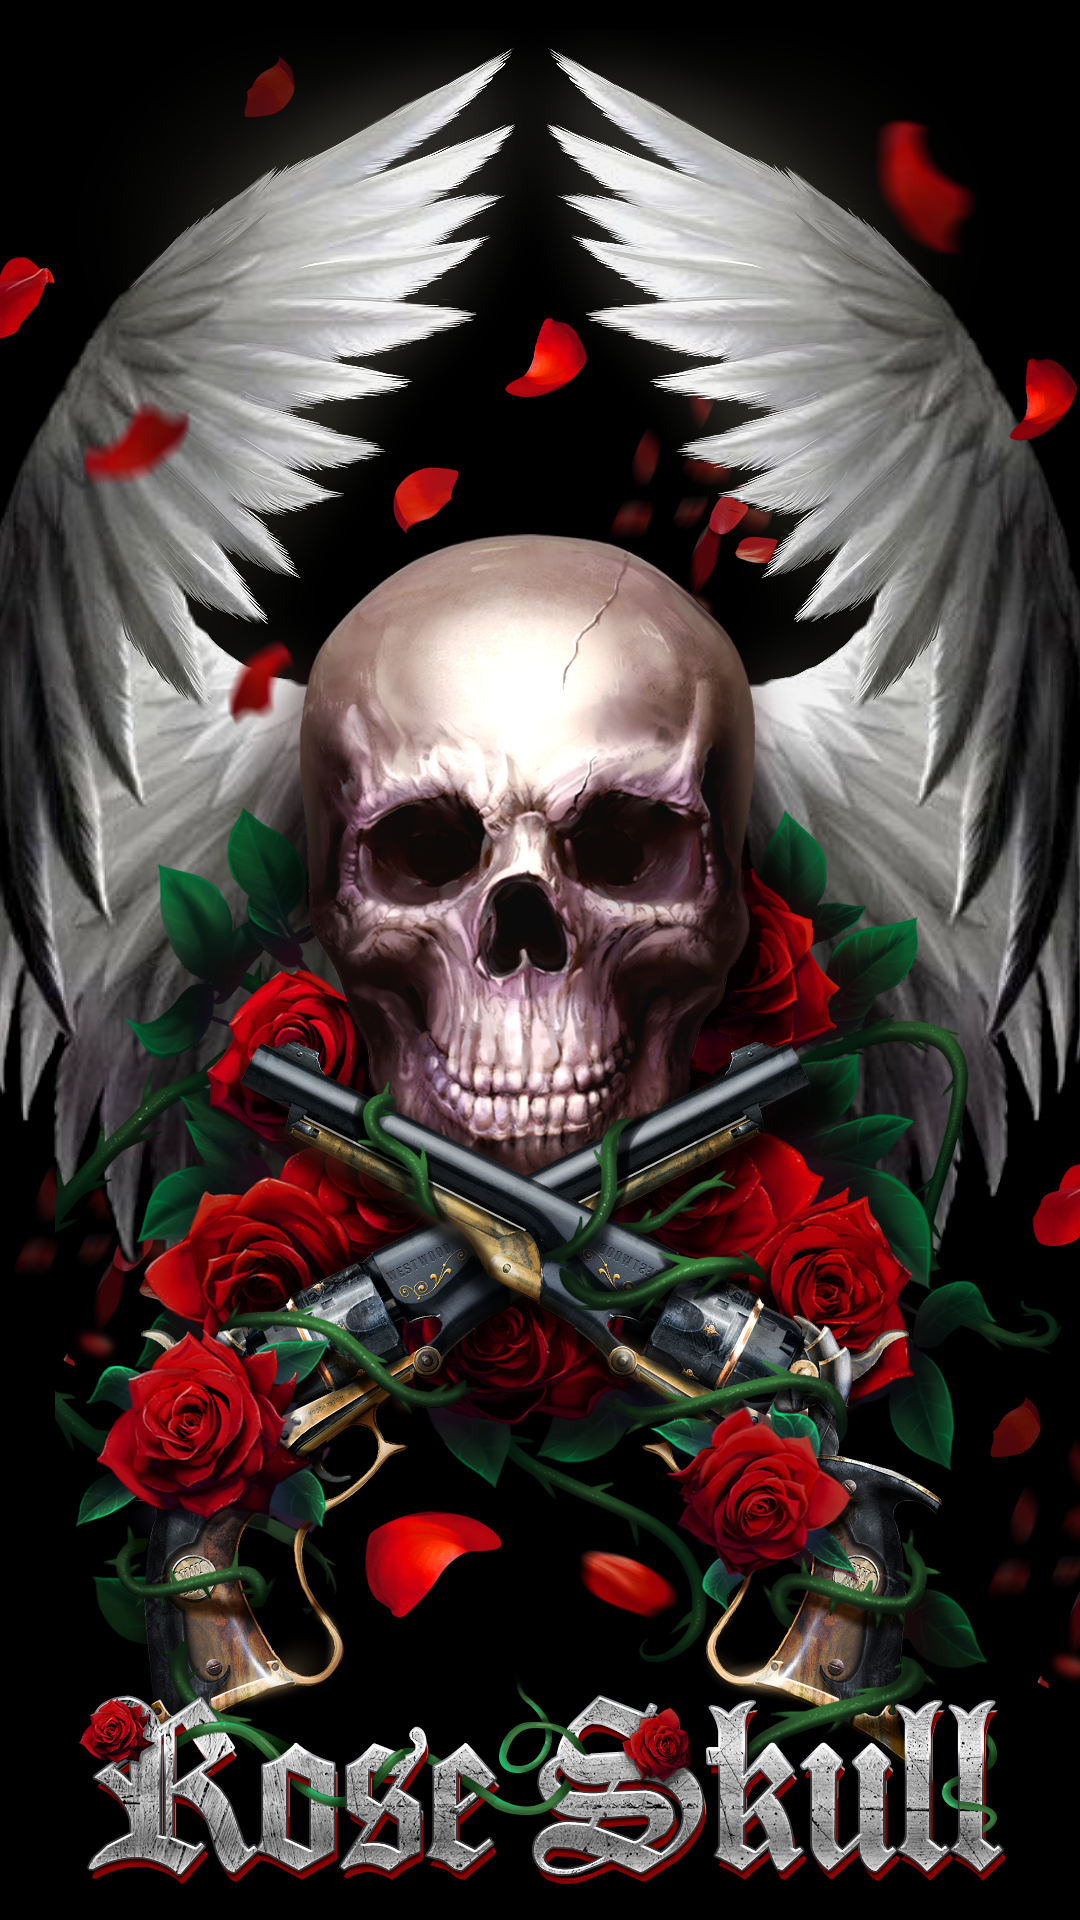 Beautiful rose skull live wallpaper! | Android live wallpapers from Ahatheme in 2019 | Skull art ...